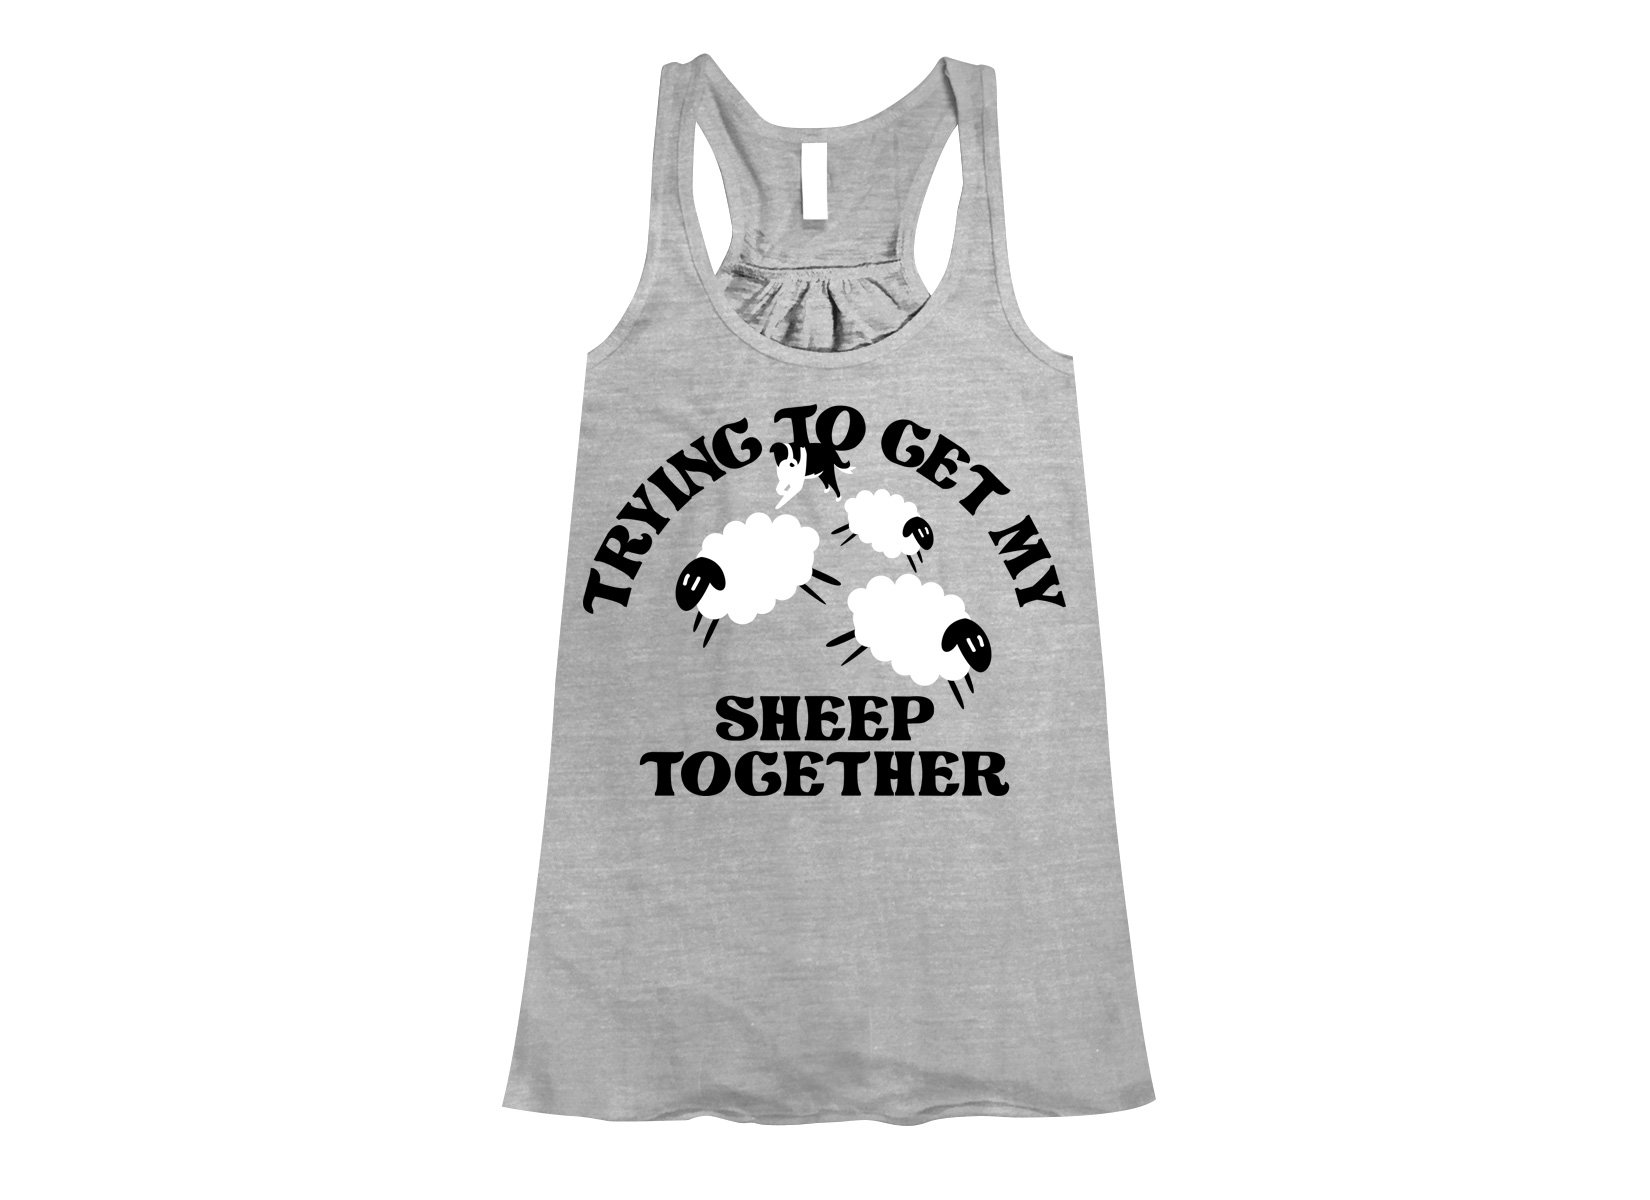 Trying To Get My Sheep Together on Womens Tanks T-Shirt